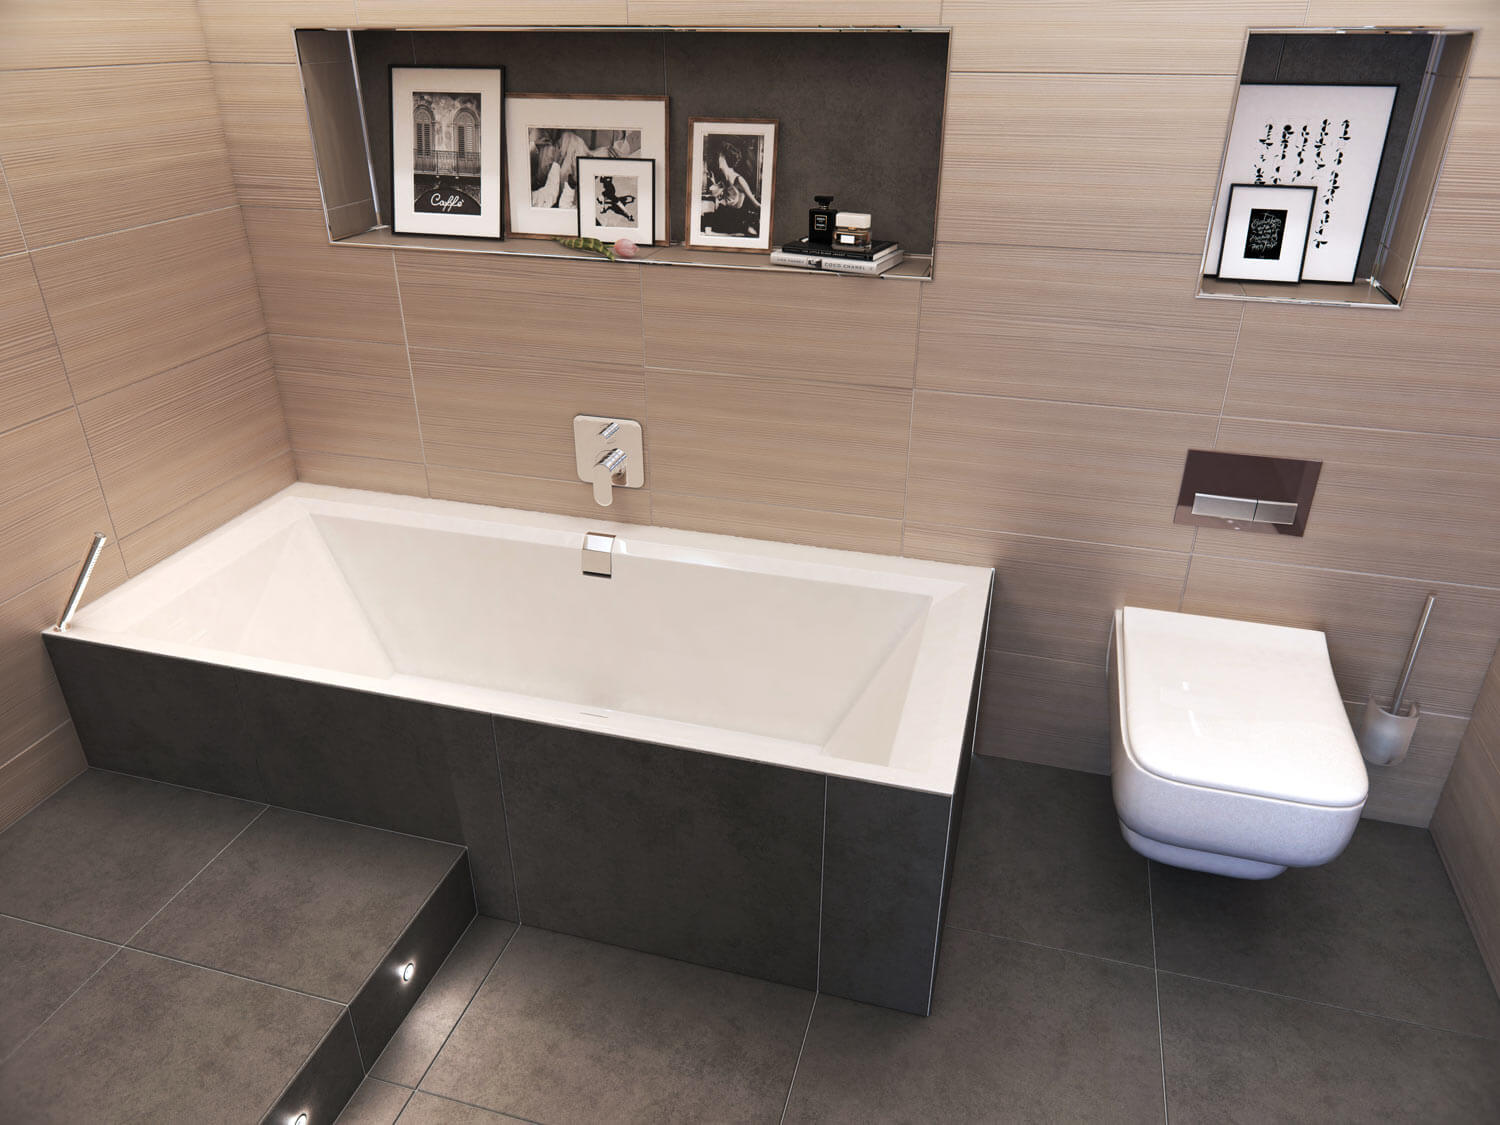 Cameo shot of a sleek modern bathroom, with pale wood panelling to the walls, slate grey floor tiles, and shelving above the suite showing black and white photography and art.